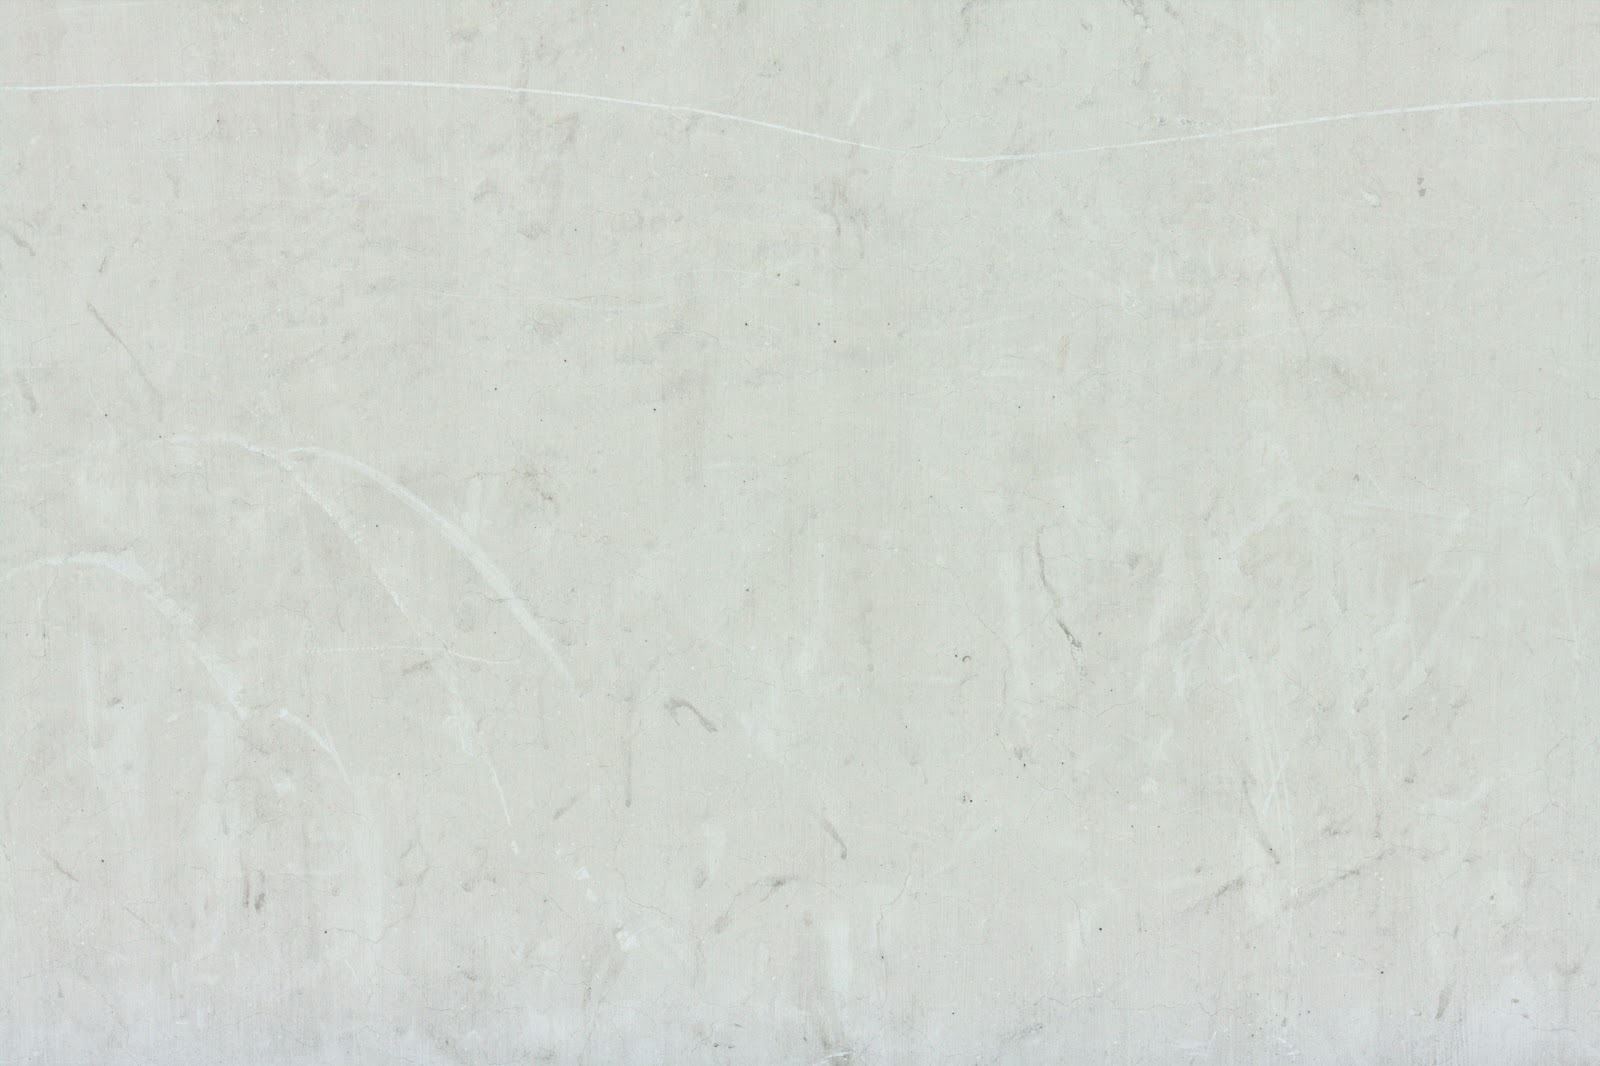 High Resolution Seamless Textures Concrete wall smooth white grunge